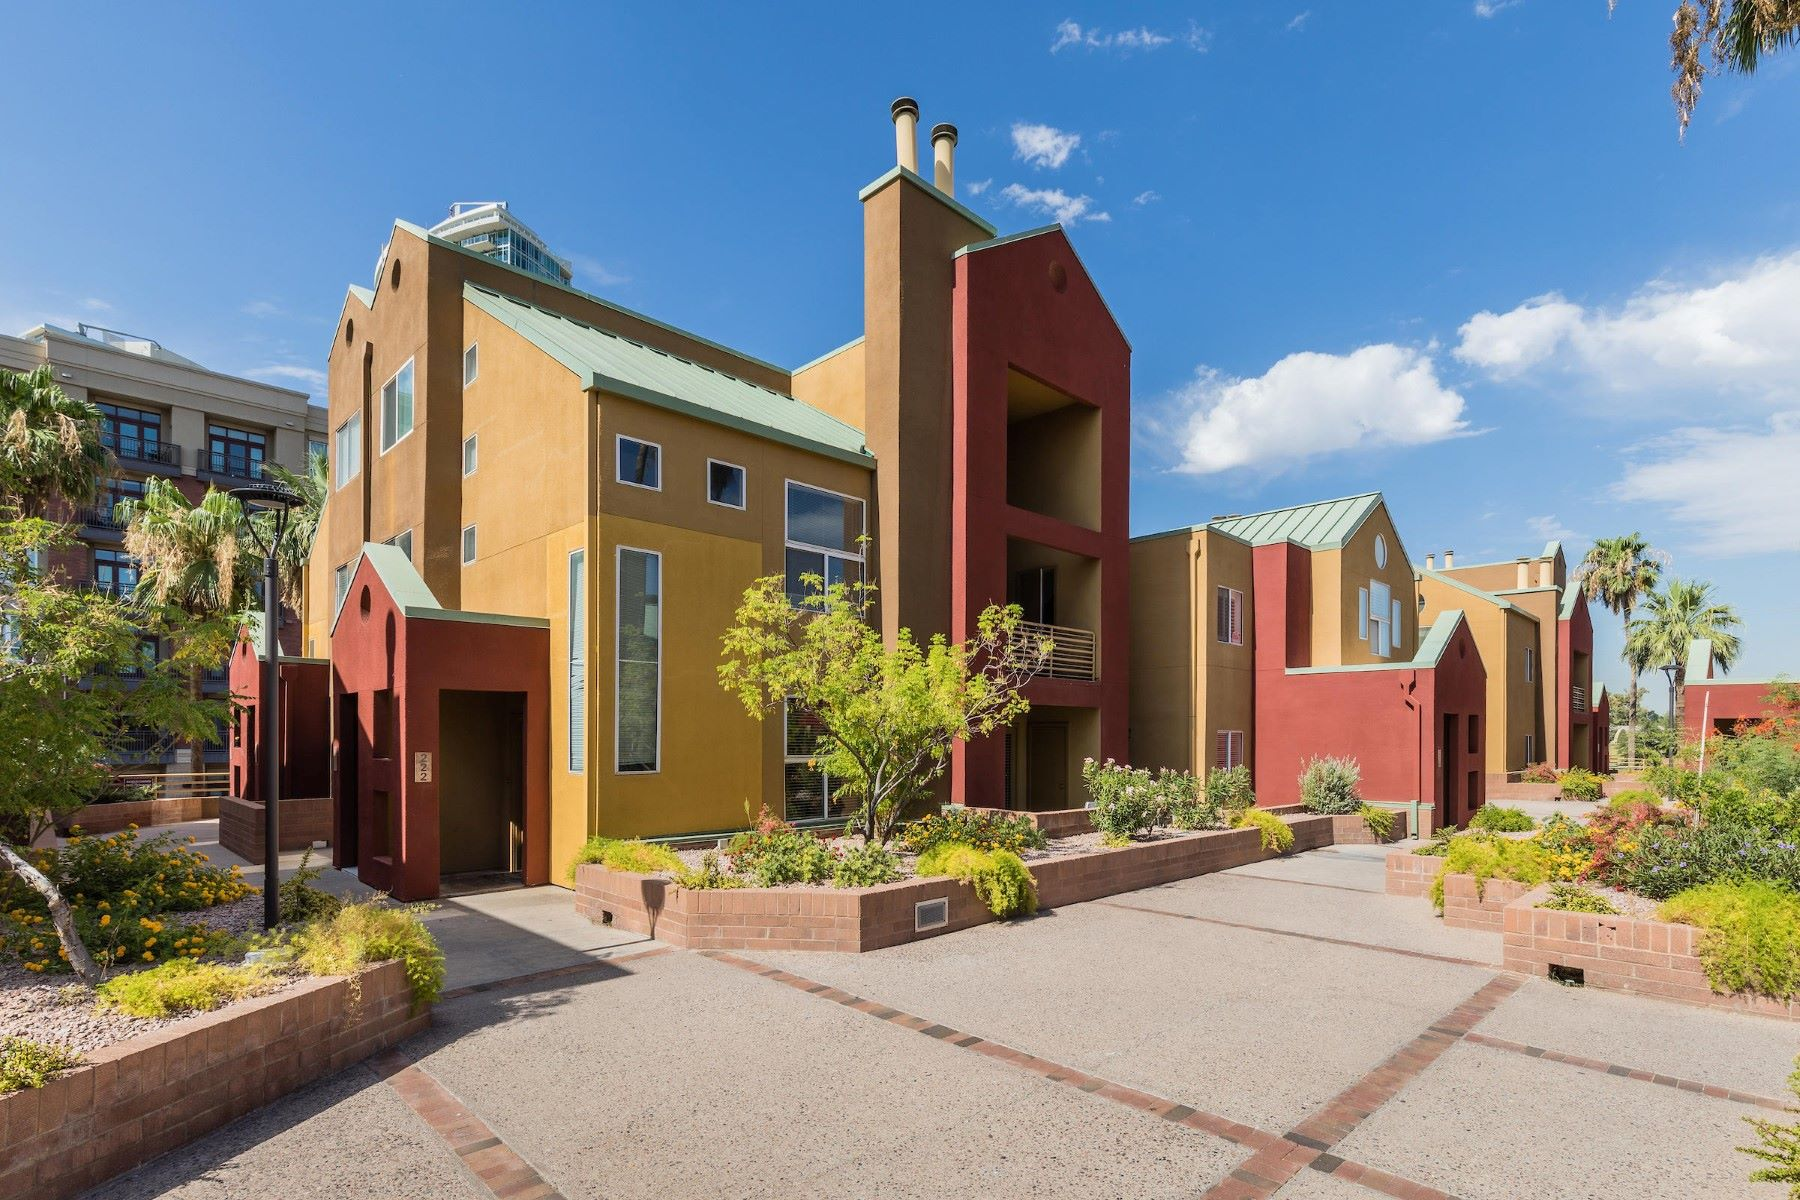 Apartments for Active at Hayden Square Condominiums 154 W 5TH ST 122 Tempe, Arizona 85281 United States